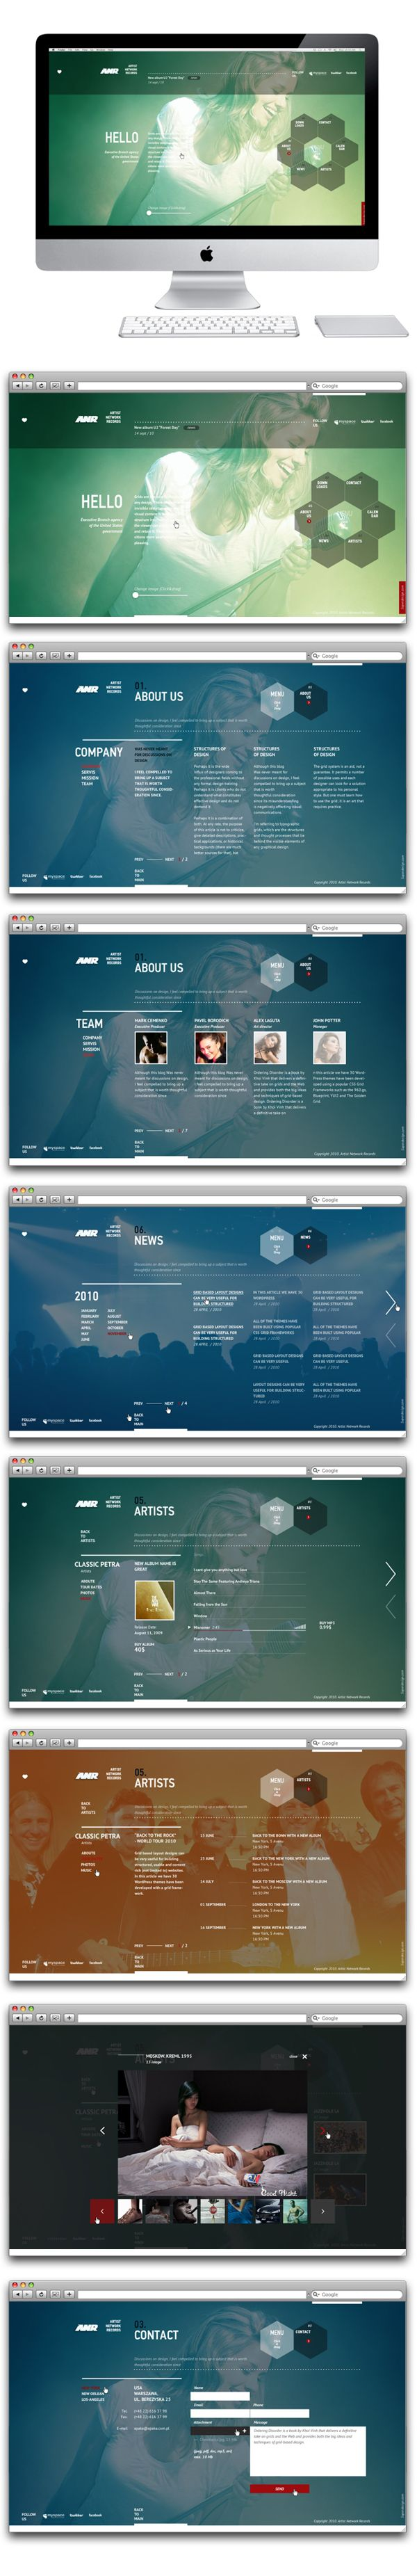 Colorful user interface for ANR by Sergei Gurov.